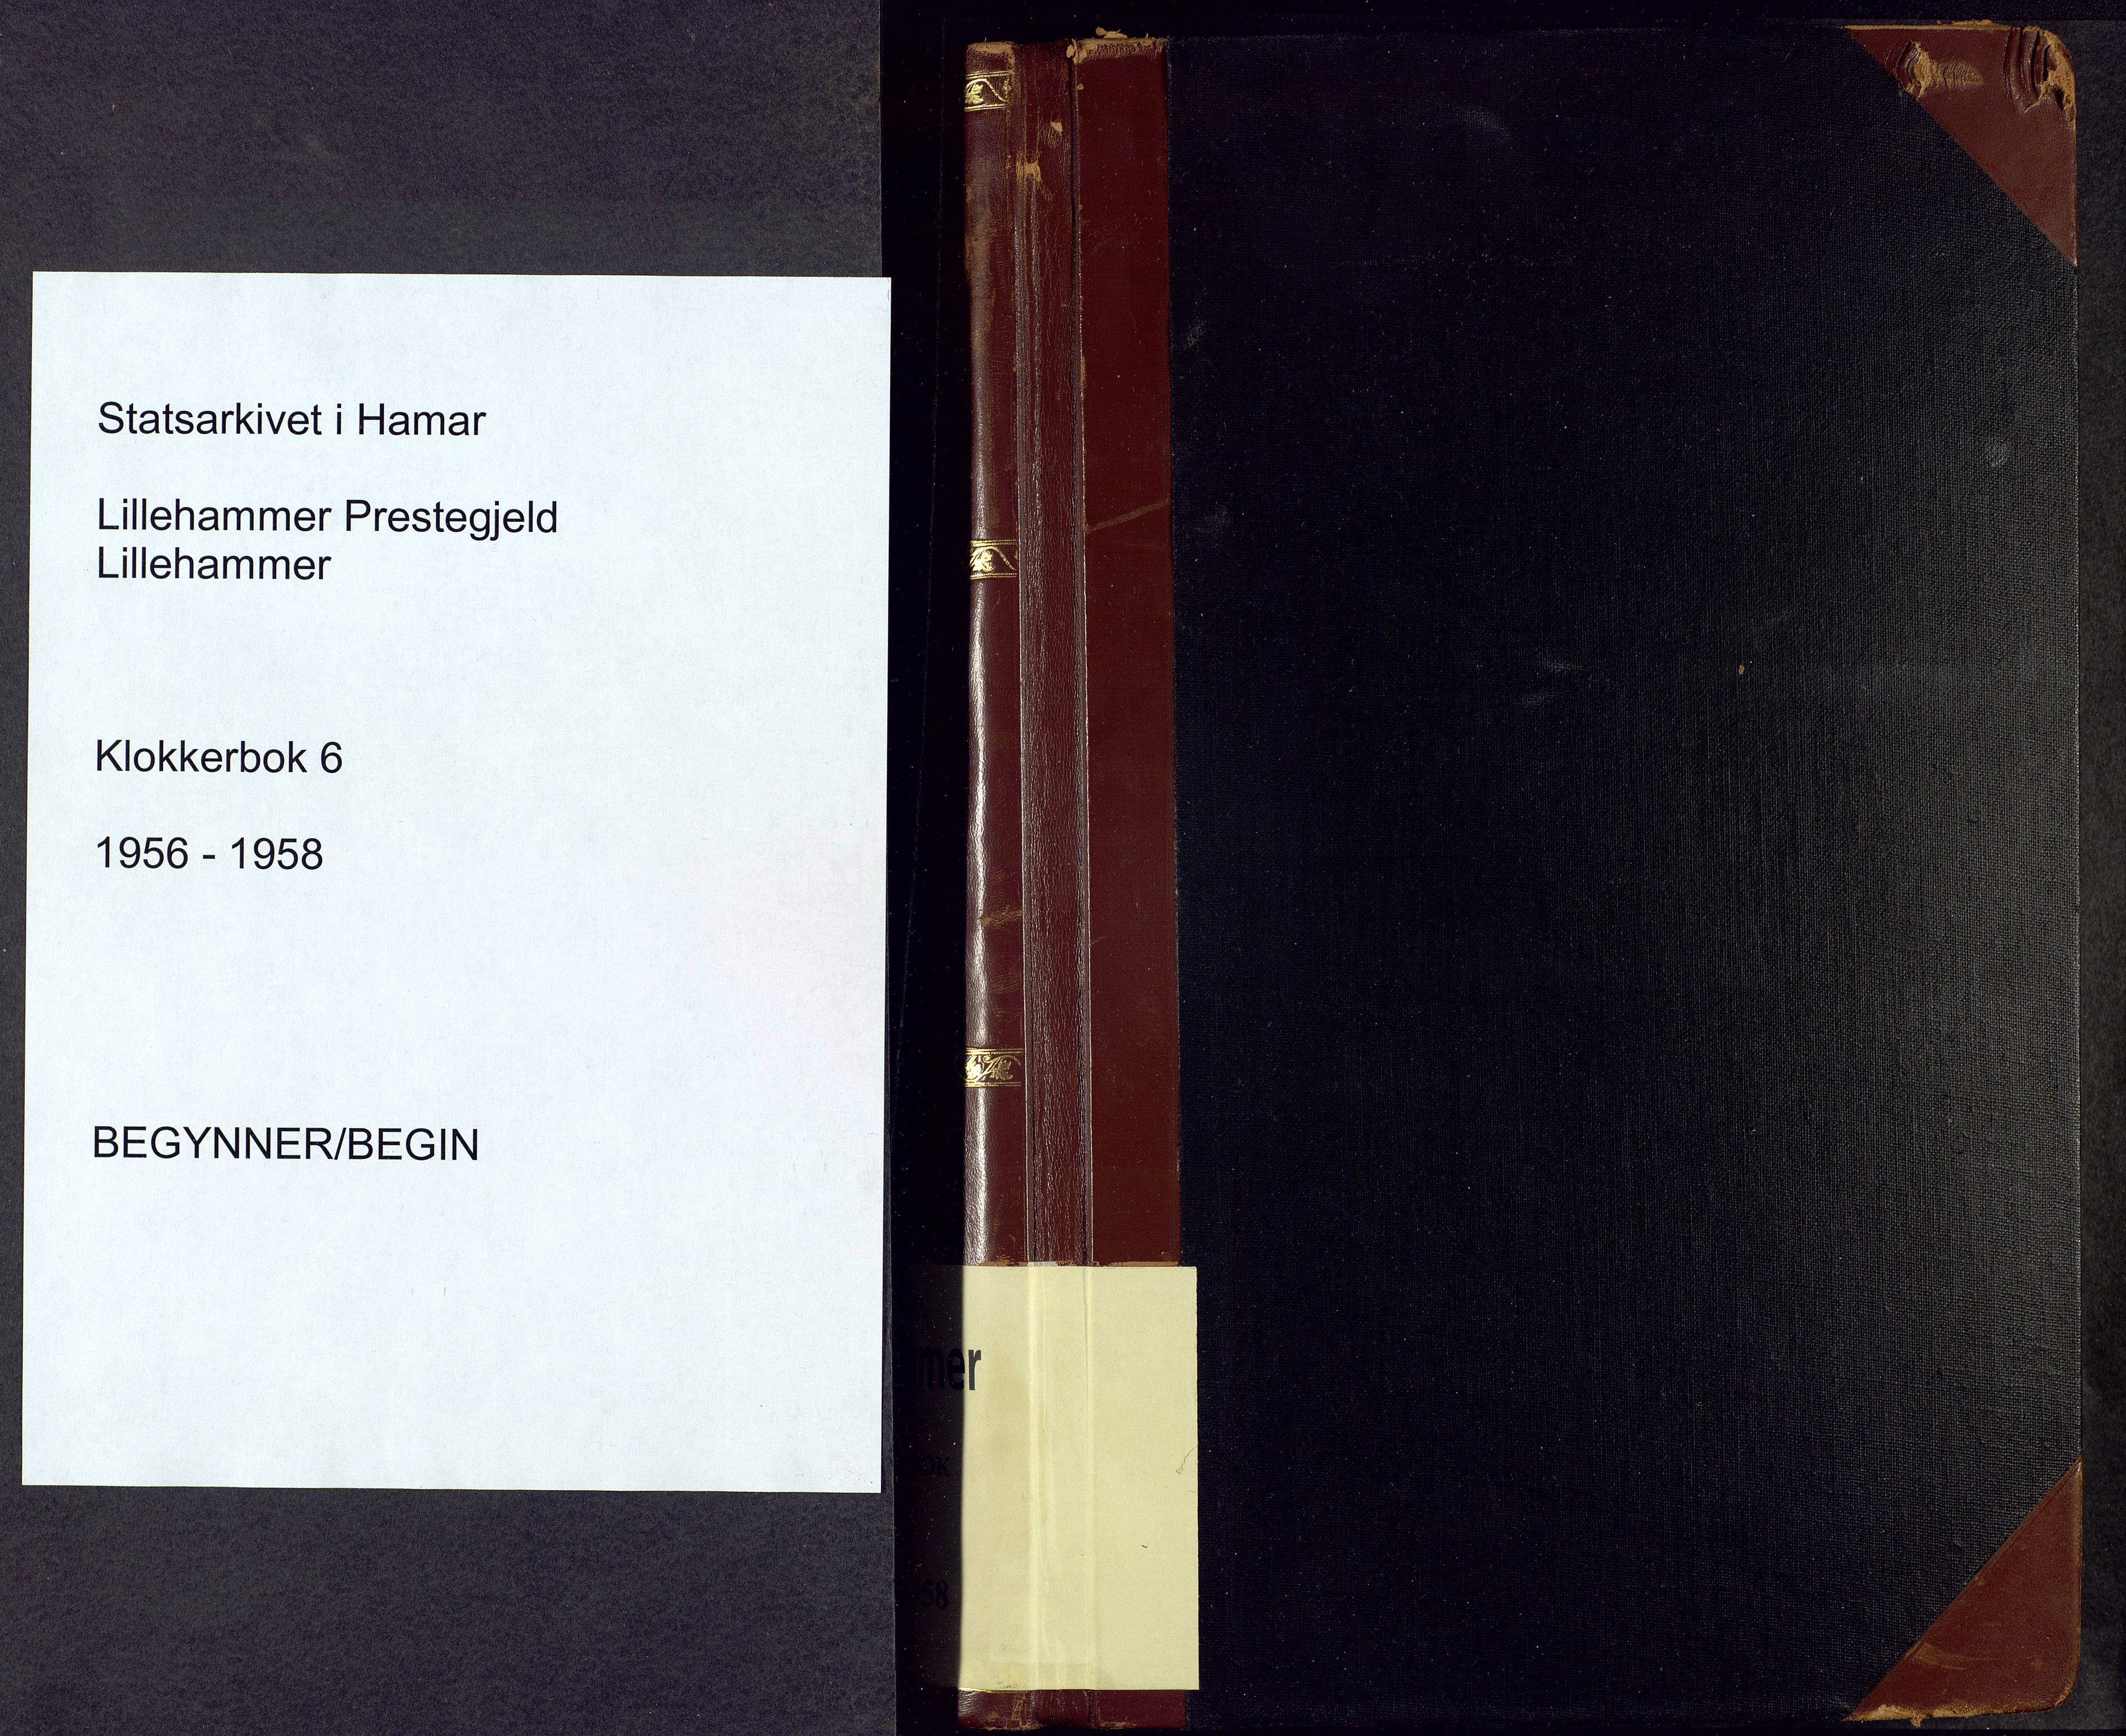 SAH, Lillehammer prestekontor, H/Ha/Hab/L0006: Parish register (copy) no. 6, 1956-1958